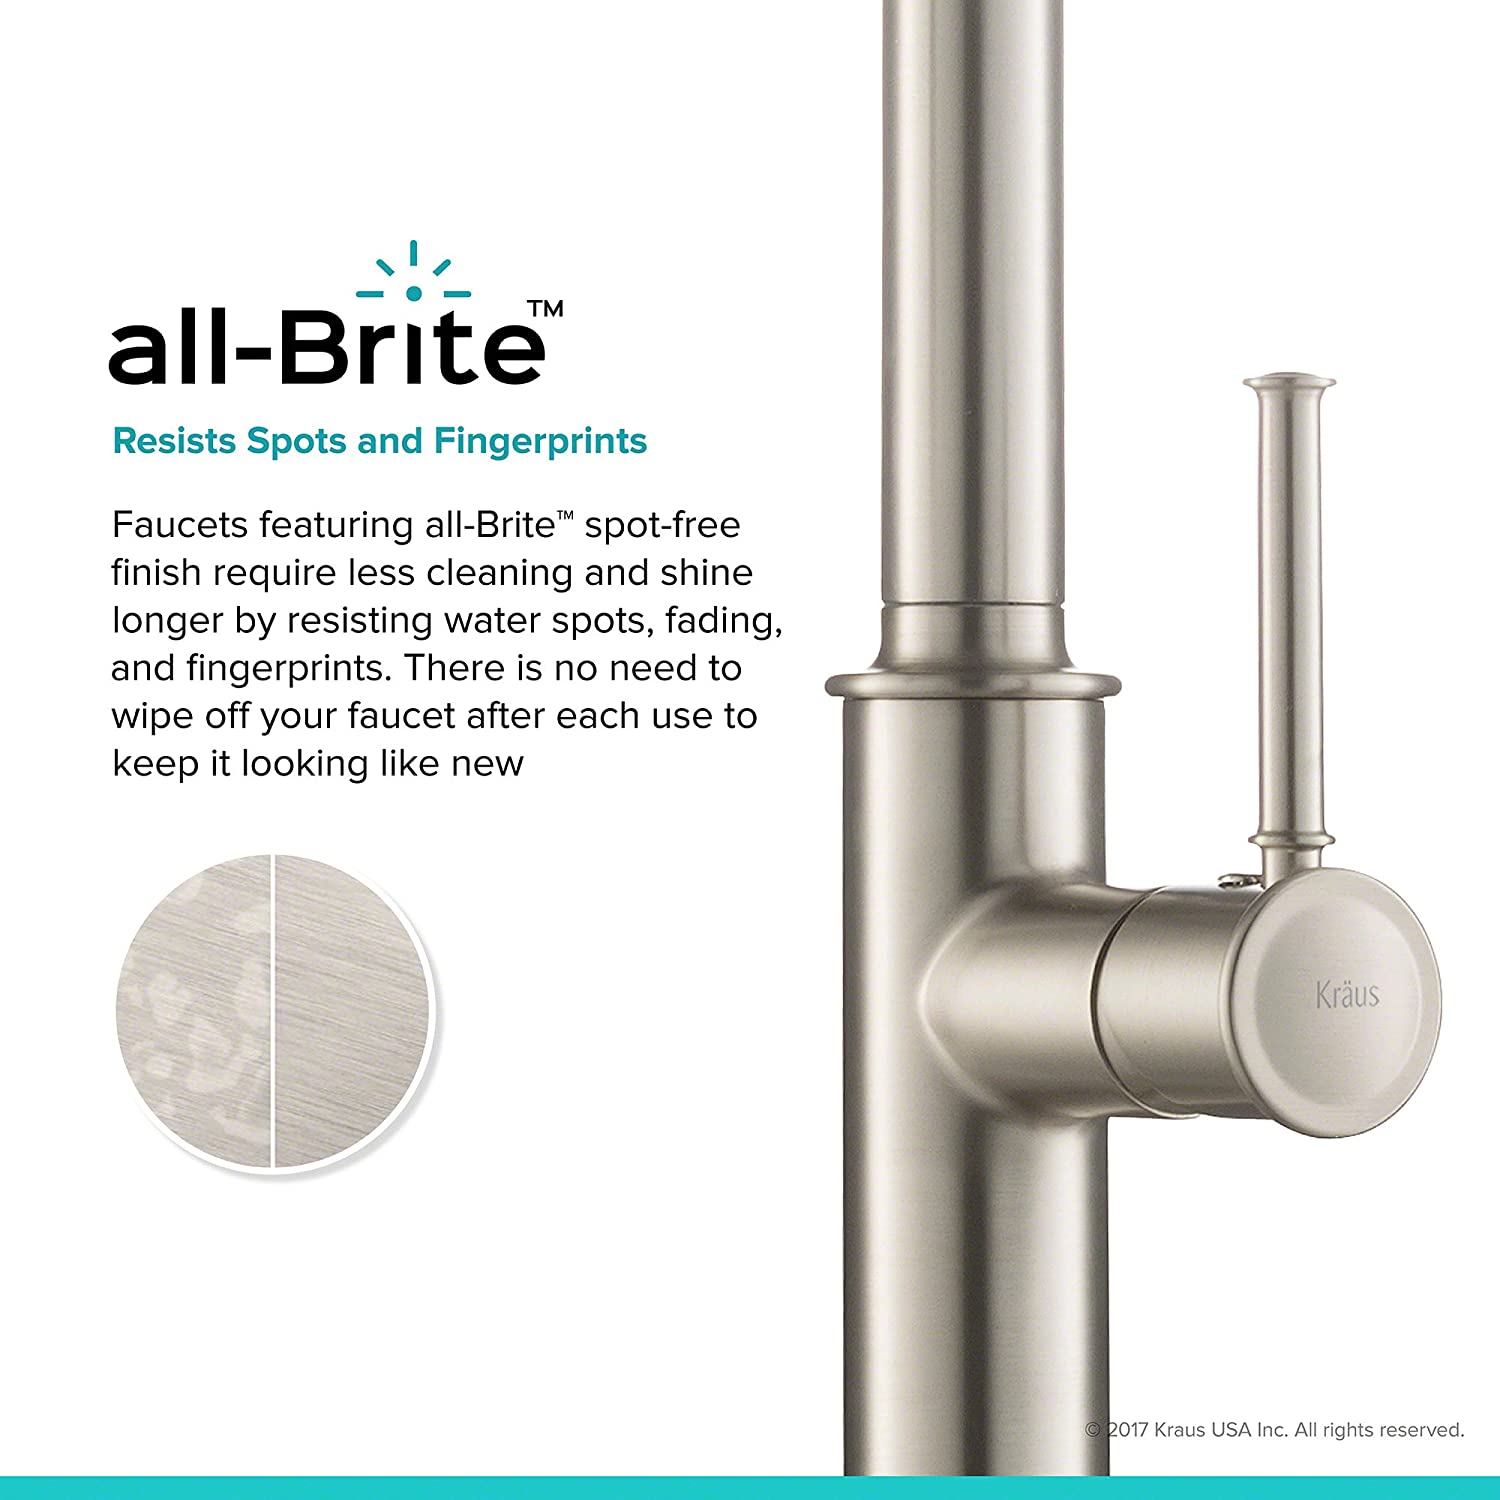 Kraus Kpf 1680sfs Sellette Single Handle Pull Down Kitchen Faucet Parts Diagram For Gourmet 150 450 With Dual Function Sprayhead All Brite Spot Free Stainless Steel Finish Amazon